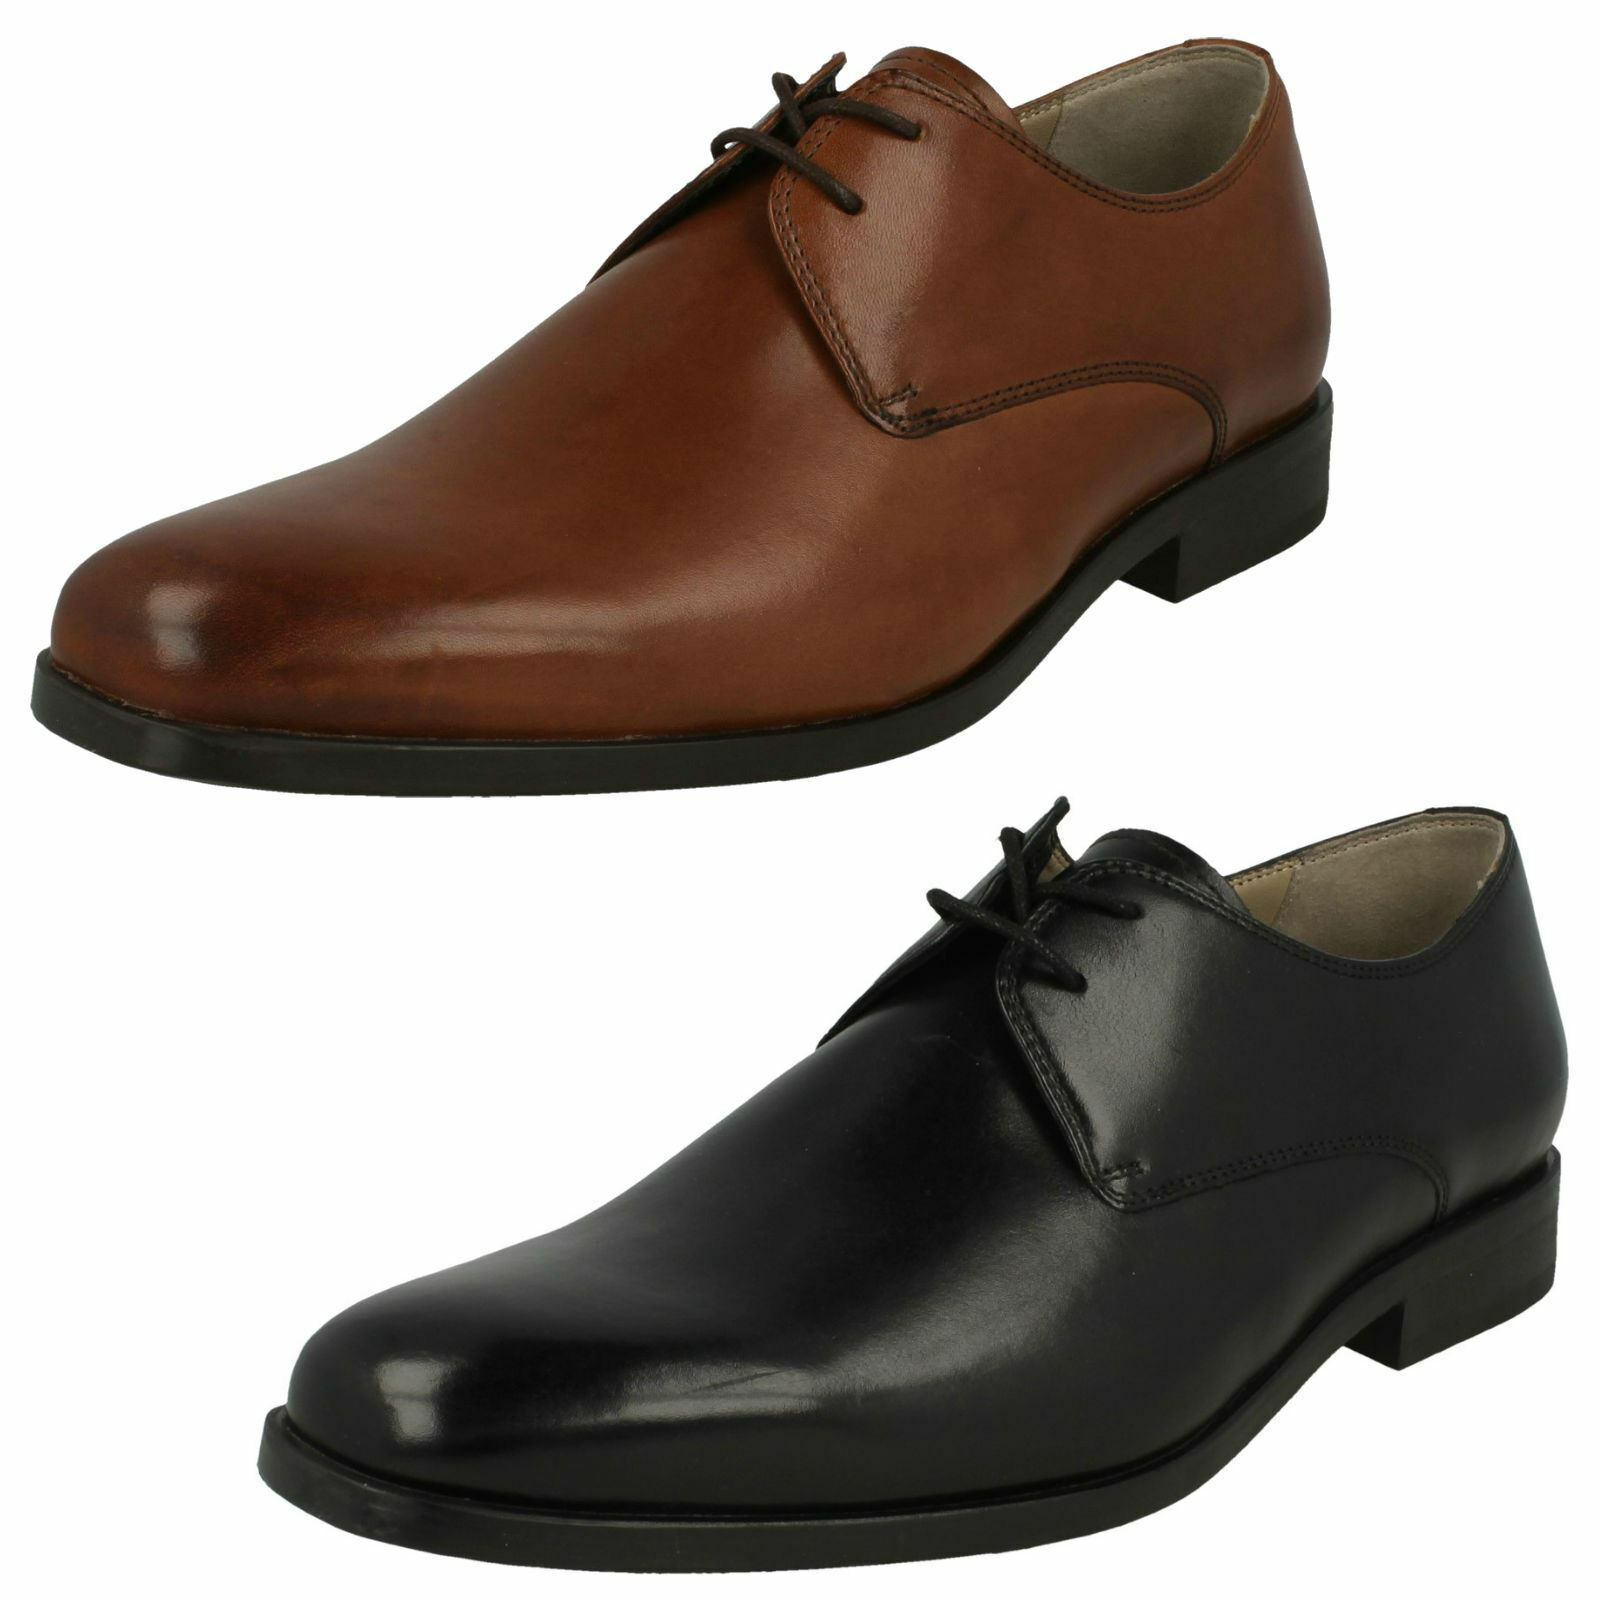 Mens Clarks Formal Leather Lace Up Shoes - 'Amieson Walk'